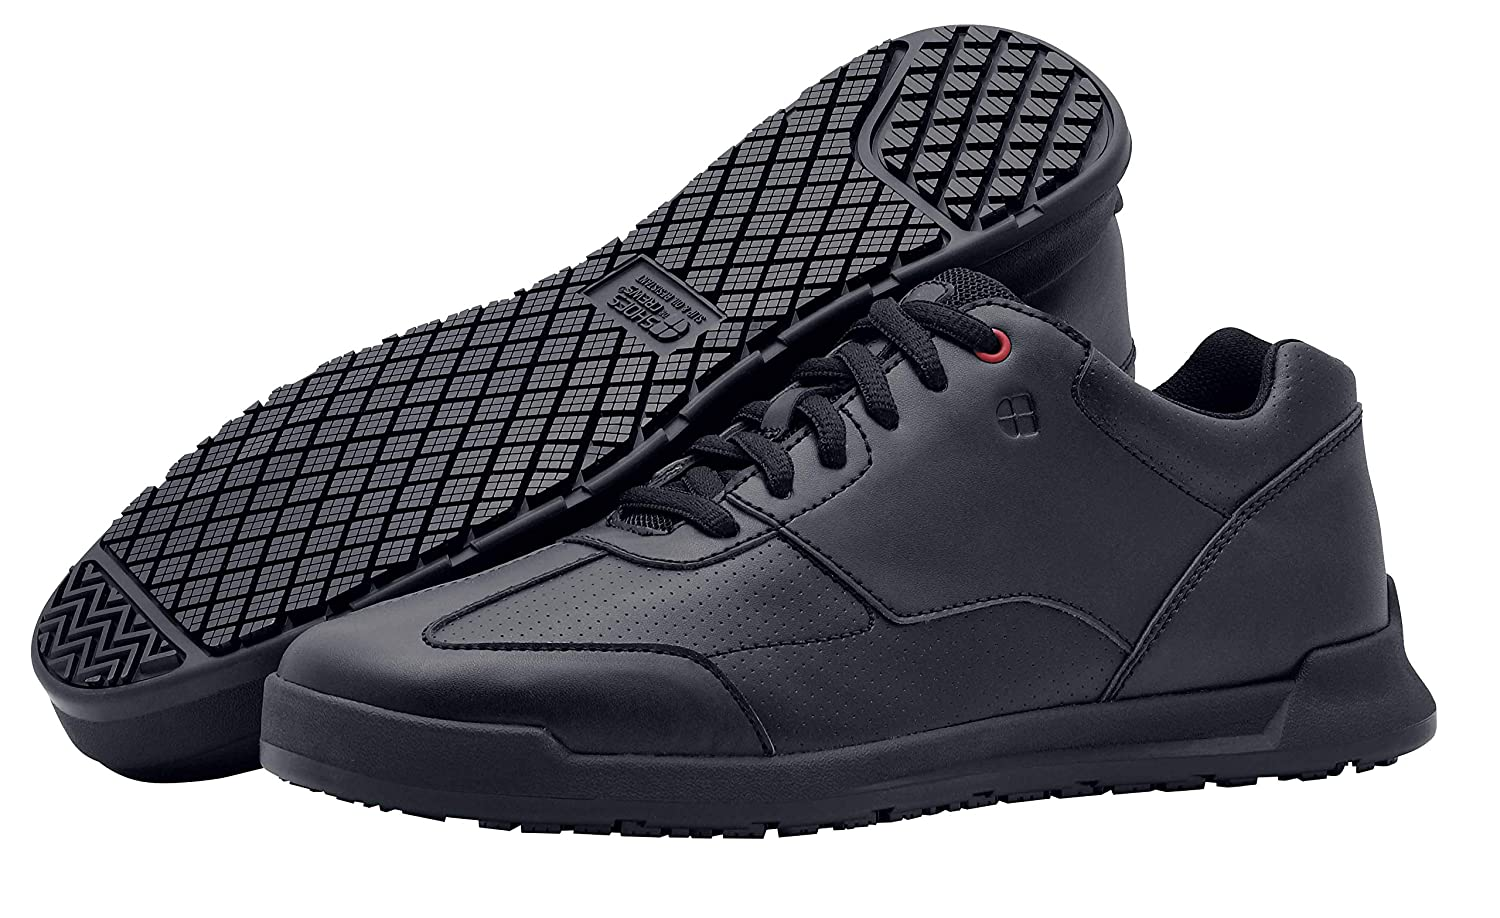 Shoes For Crews BB583-35 Liberty Trainers Shoe, Black, 2.5 UK (35 EU):  Amazon.co.uk: Business, Industry & Science